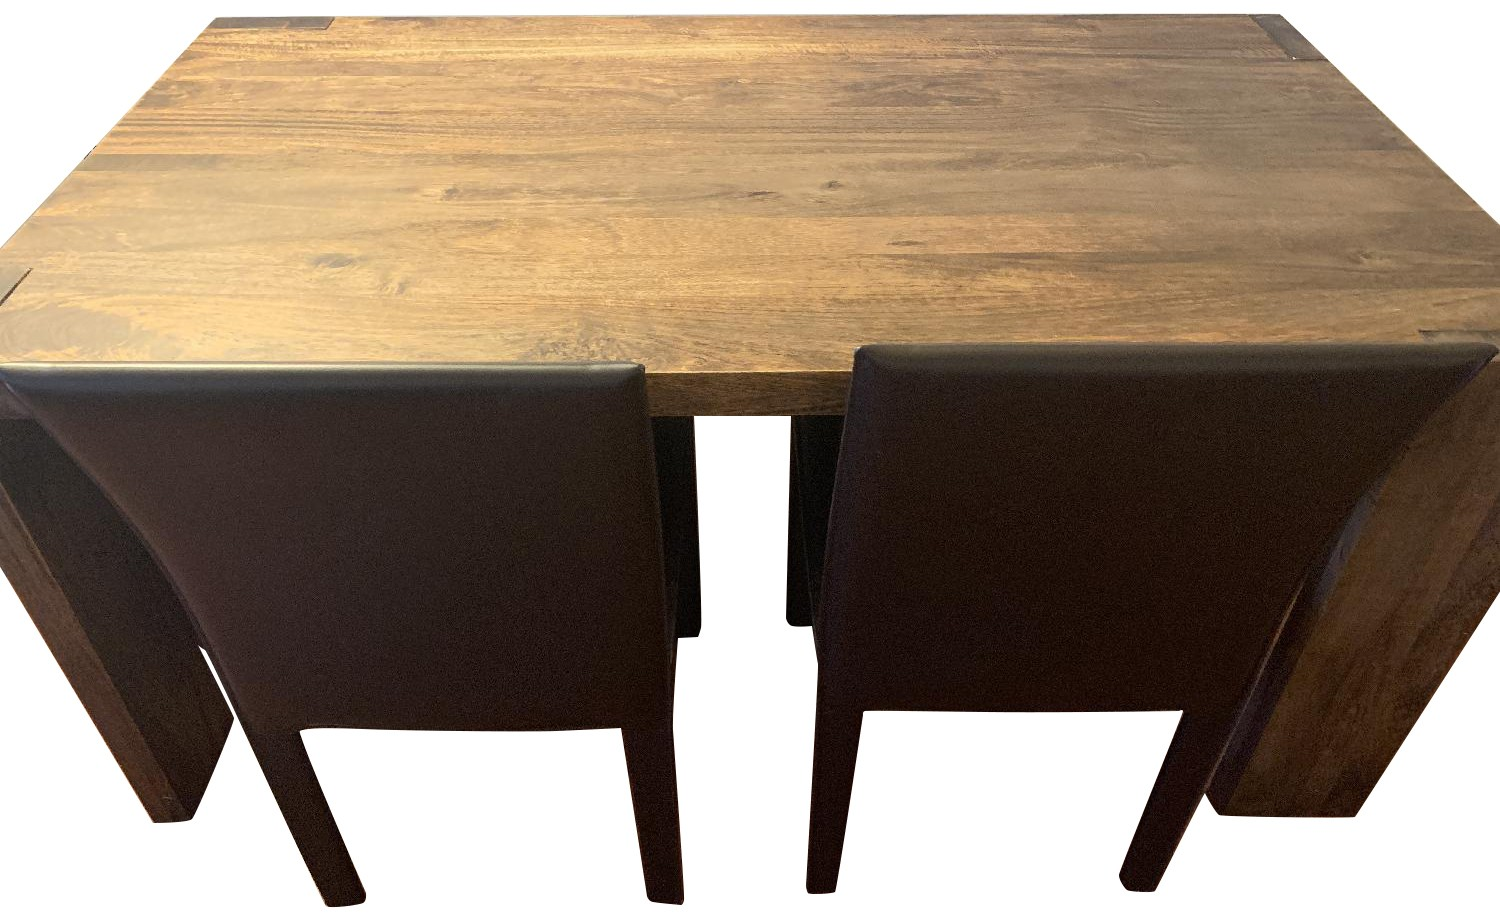 Crate & Barrel Big Sur Table w/ 1 Bench + 2 Leather Chairs